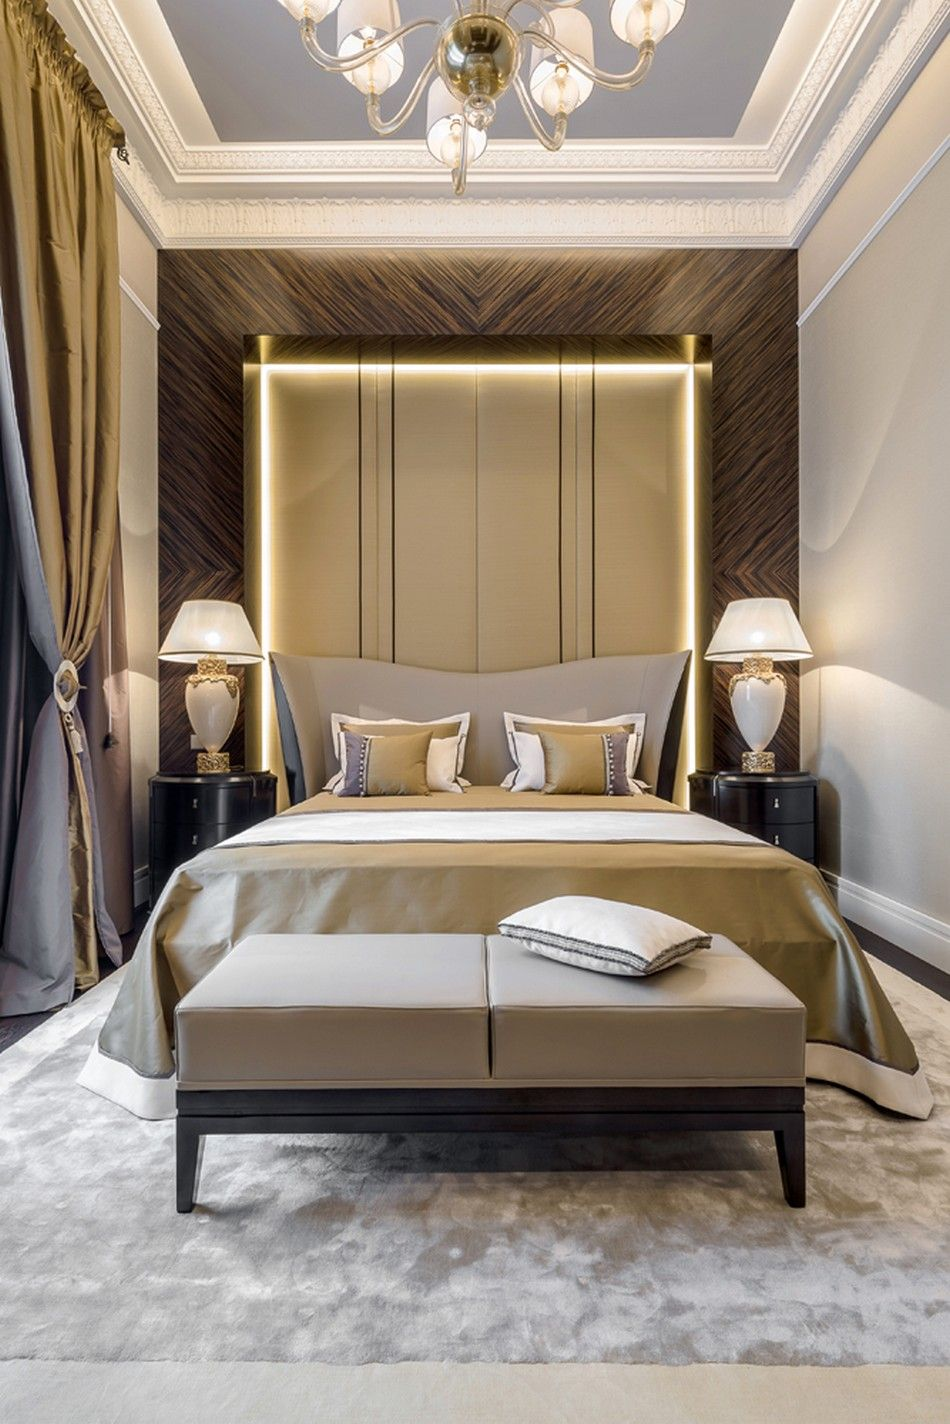 Loft bedroom privacy  This bedroom packs a lot of punch in a small space Itus full of